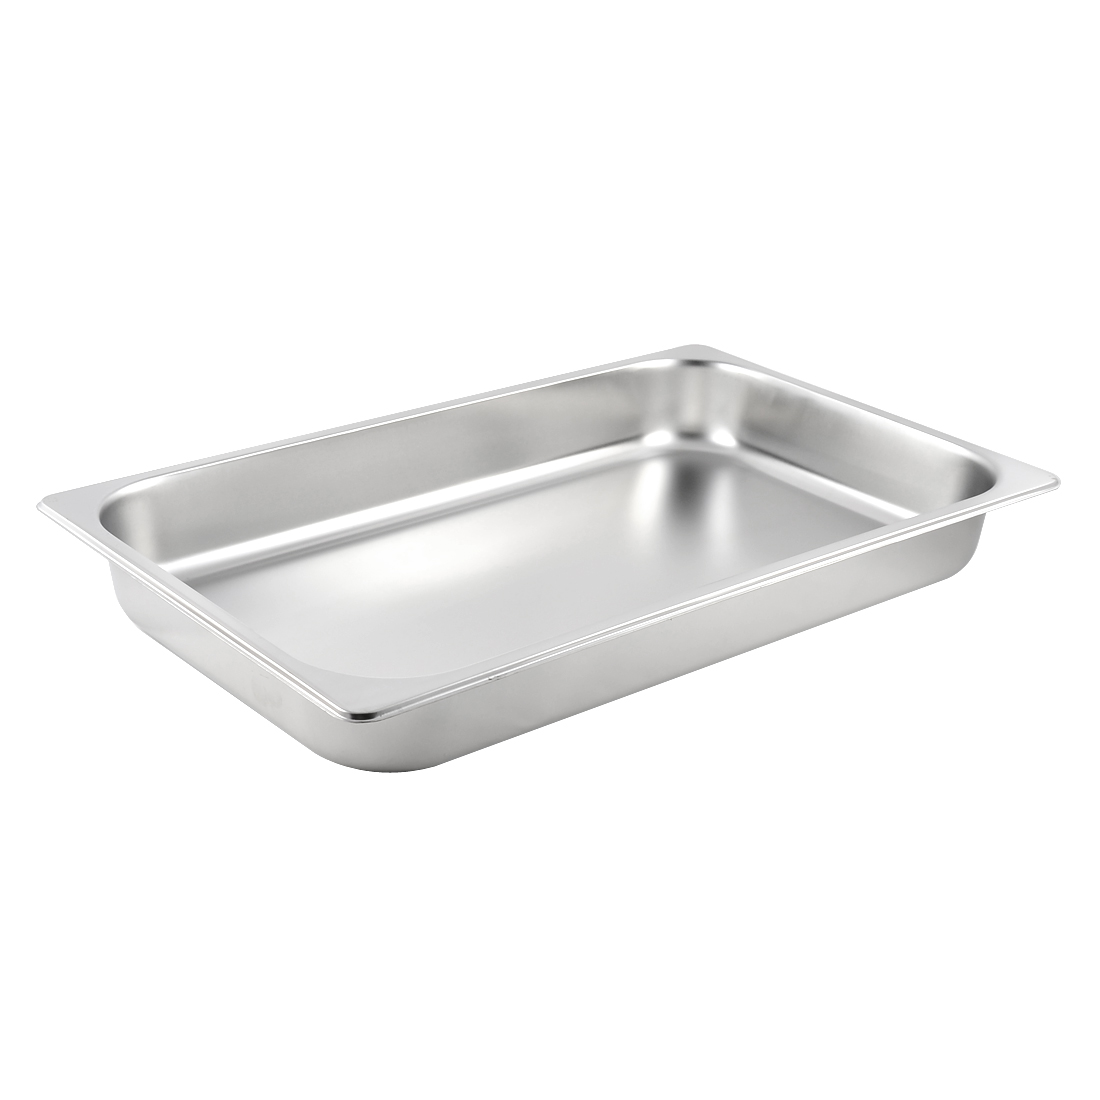 Home Kitchen Catering Metal Food Container 1/1 Gastronorm Pan 65mm Height